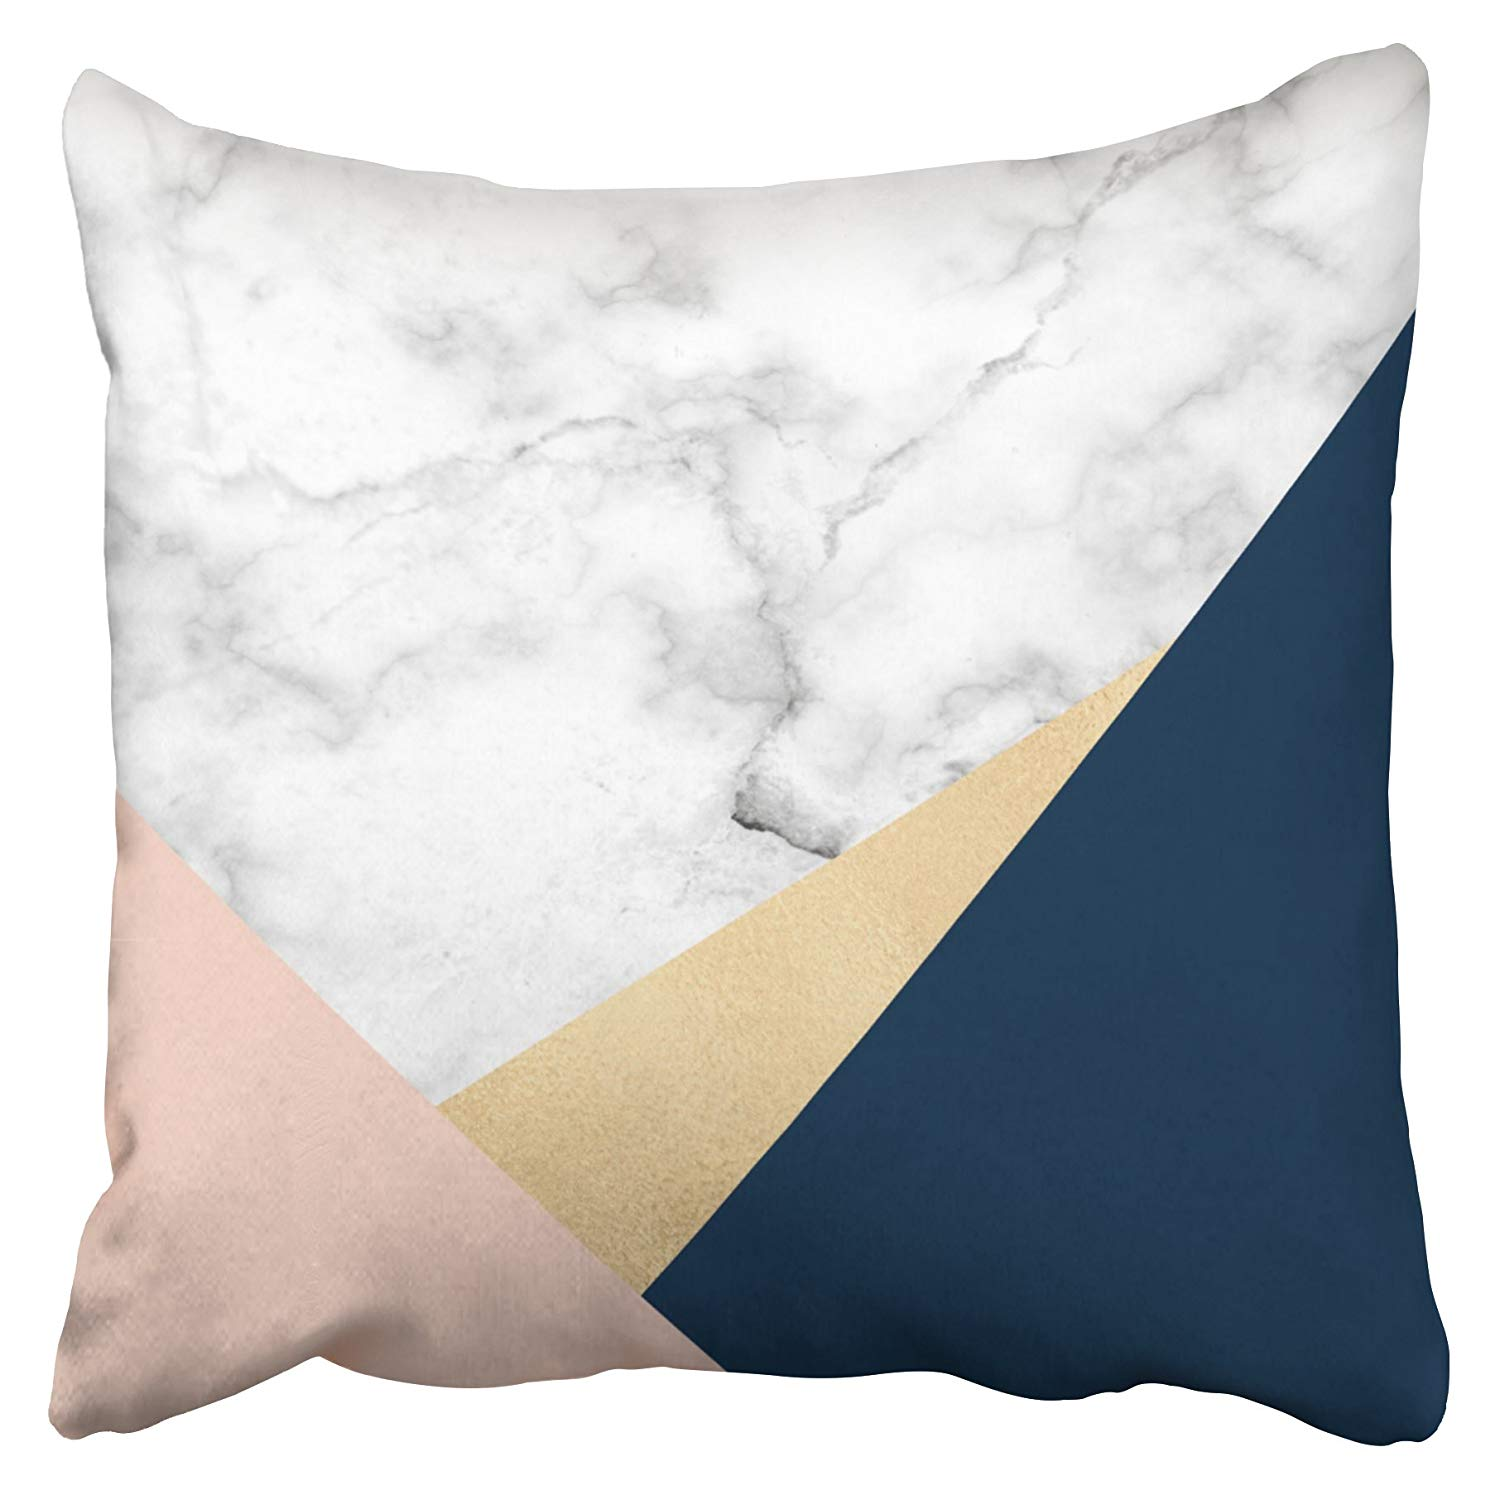 WOPOP Elegant White Marble Gold Peach Blue Color Block Pillowcase Cushion Cover 16x16 inch